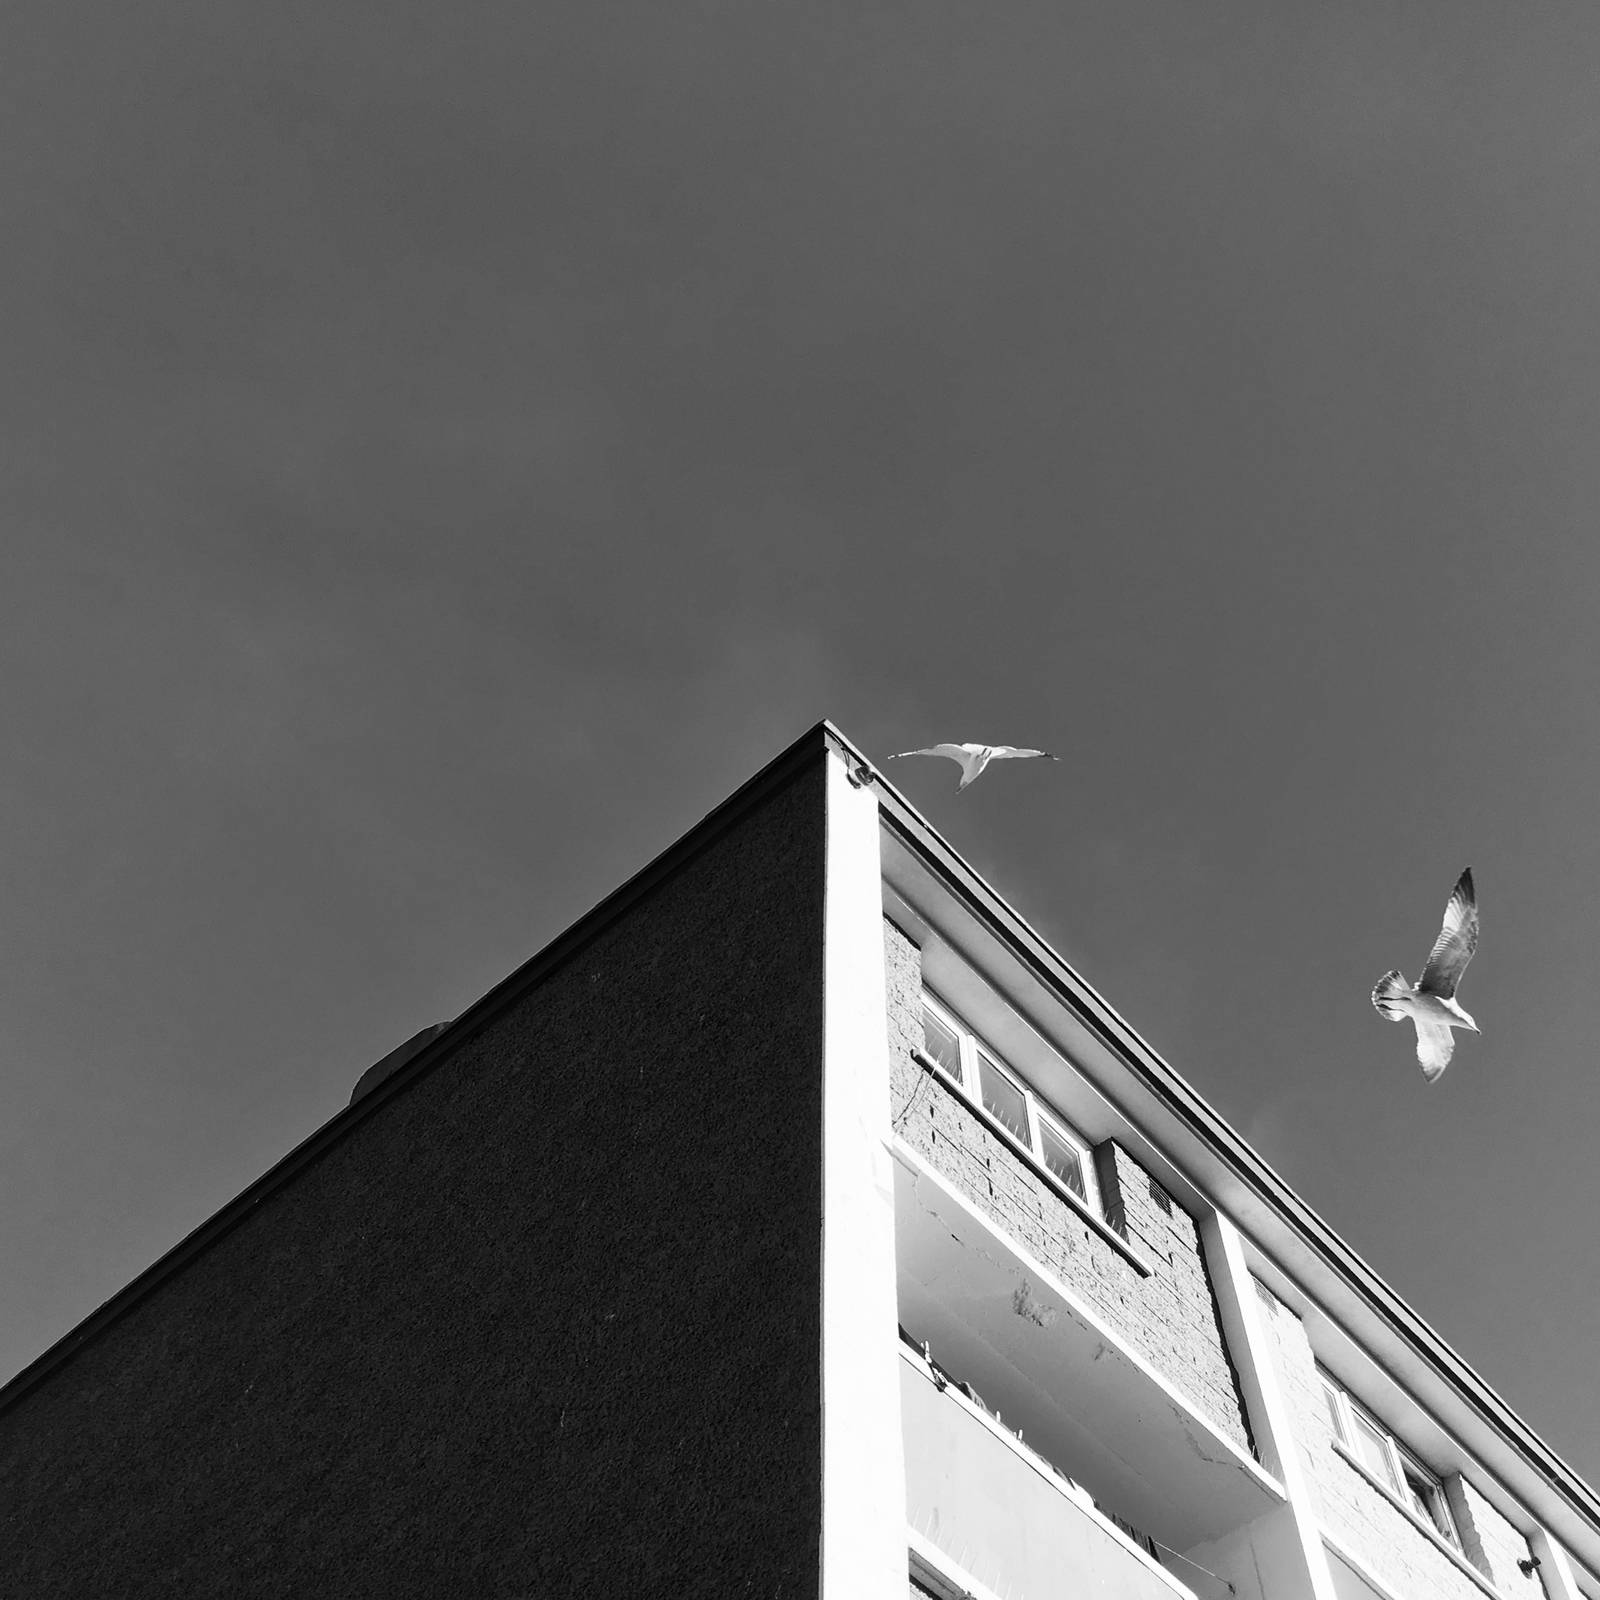 Rooftop and two seagulls at Usher's, Dublin